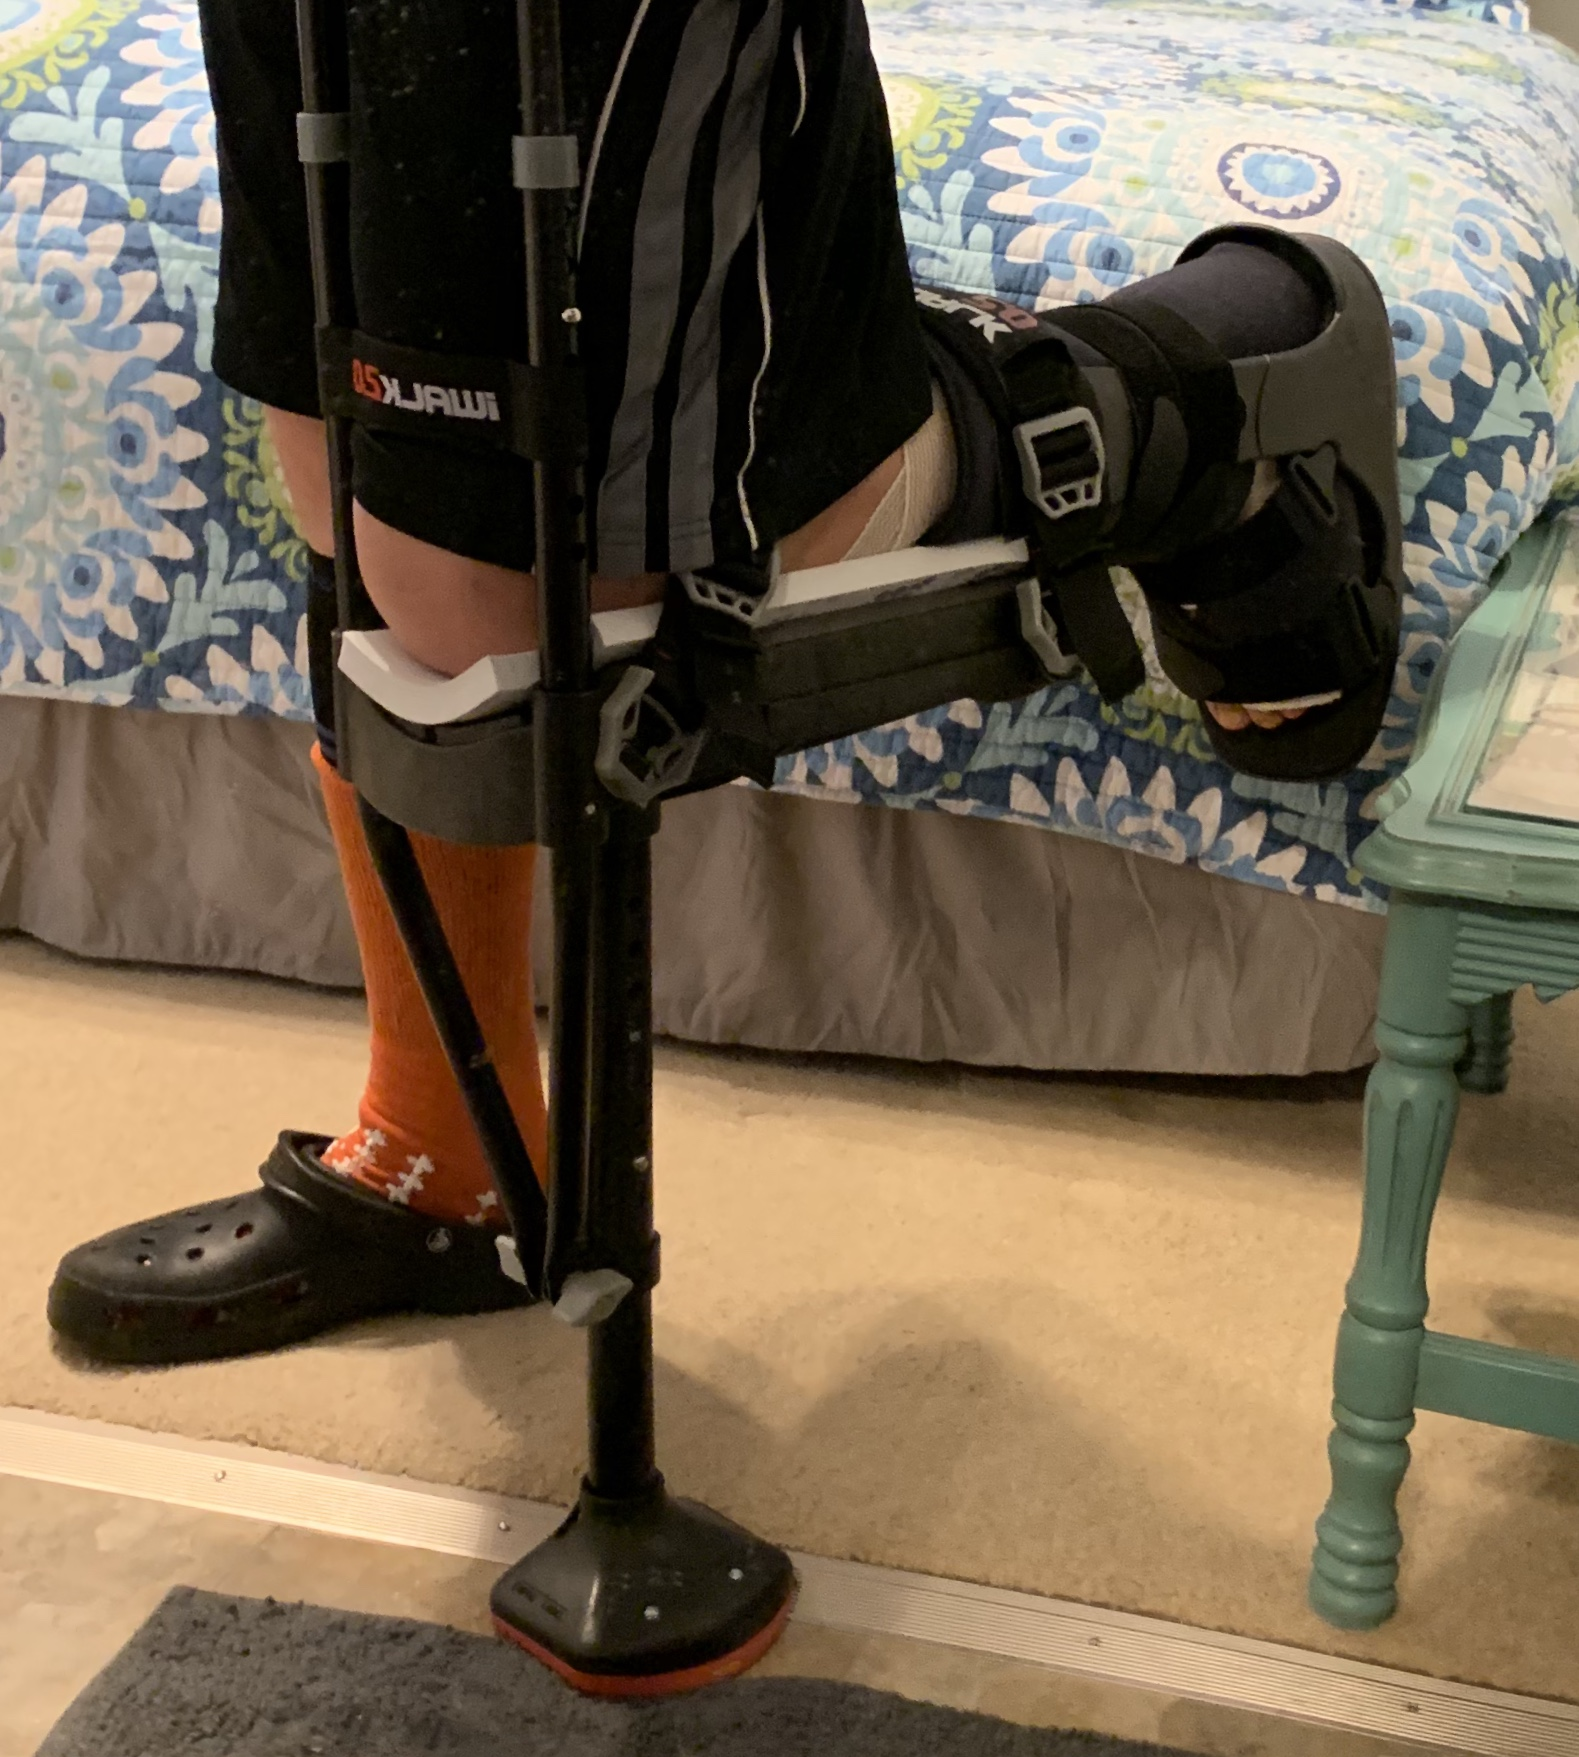 The iWalk 2.0 in use with the extra foam